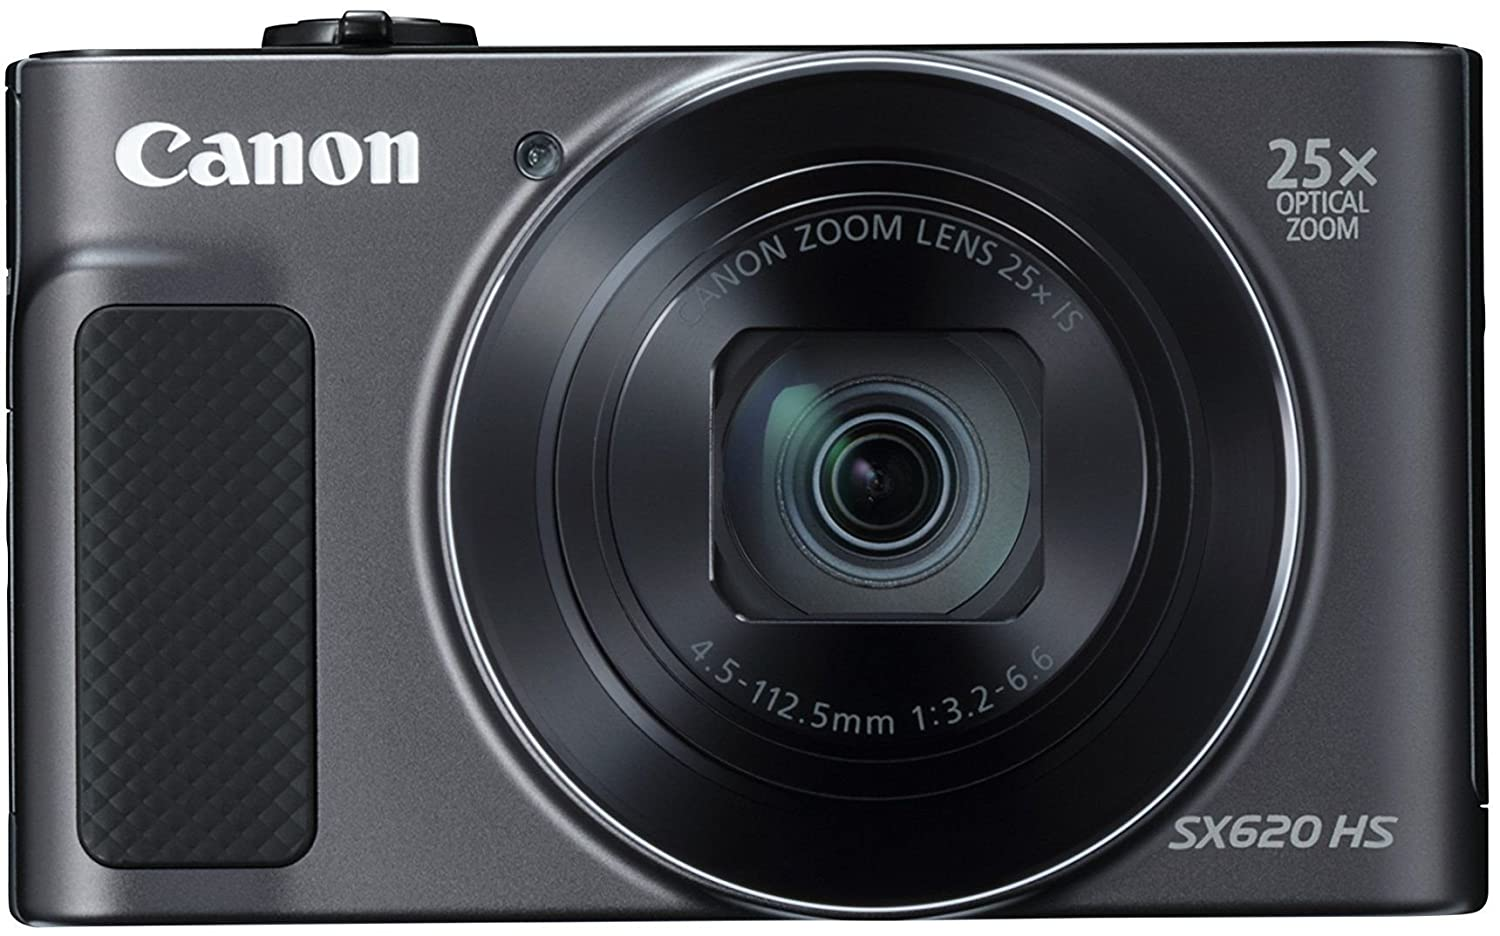 Canon PowerShot SX620 Review